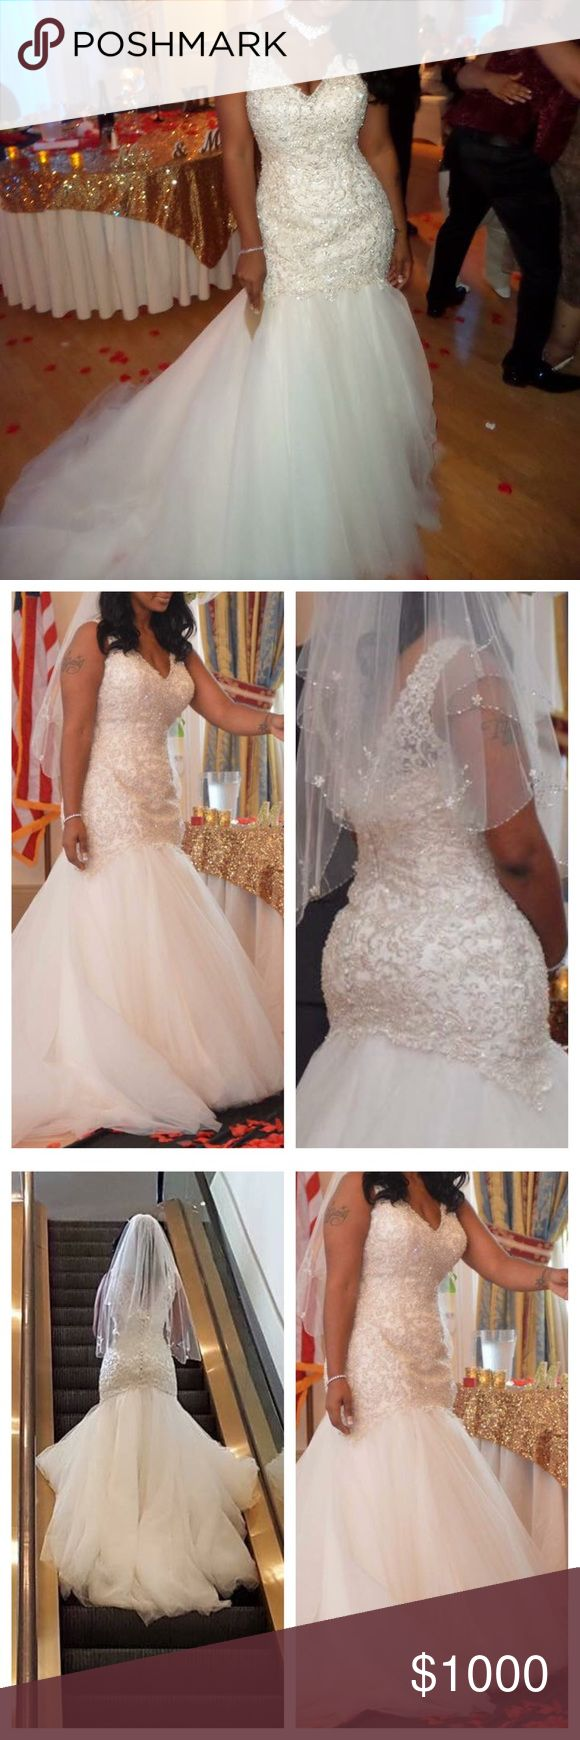 Allure Bridals Wedding Gown Size: 20 , waist altered to 30 inches ‼️‼️ bride stands at 5''10.5 inches. Bride is wearing flats in photos. Dress zips up back with buttons up back as well. Gown has not been cleaned, will require cleaning of train. This is perfect for a curvy bride with wide hips and small waist. Bride's bust is 36DDD. Style number is W377 if you want to google images. This is considered a full-figured/plus size gown. Allure Bridal Dresses Wedding